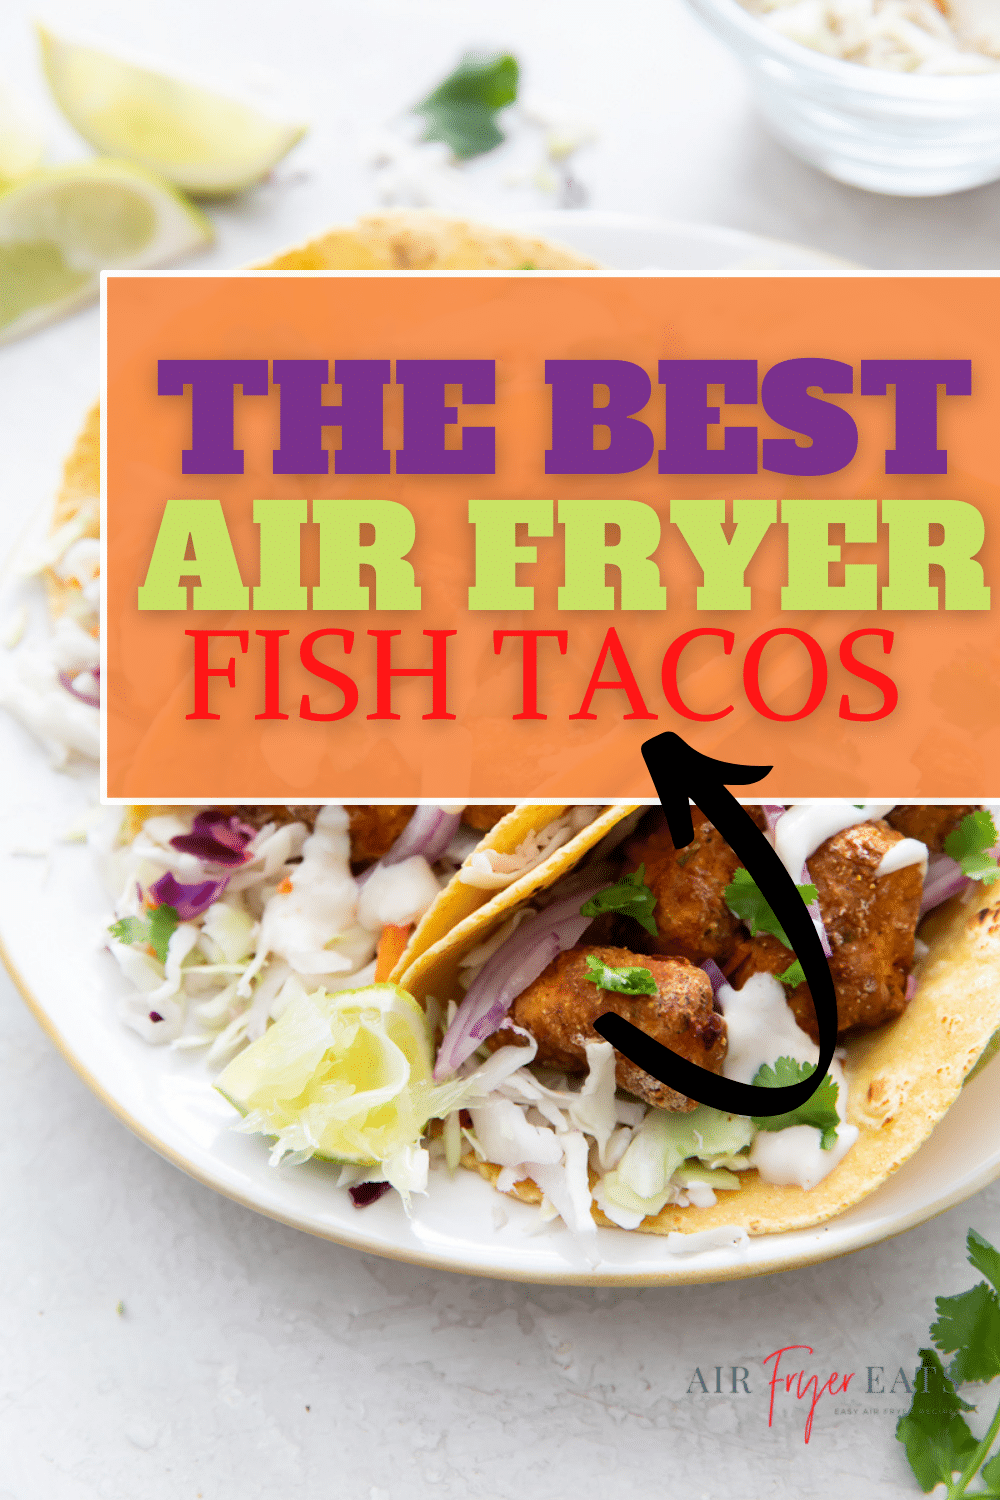 Air Fryer Fish Tacos are tender and juicy white fish with a crispy cornmeal breading. Wrapped in tortillas and topped with authentic Mexican taco toppings, including a delicious garlic lime crema sauce, these fish tacos will be the best you've ever had. #fishtacos #airfryerfish via @vegetarianmamma